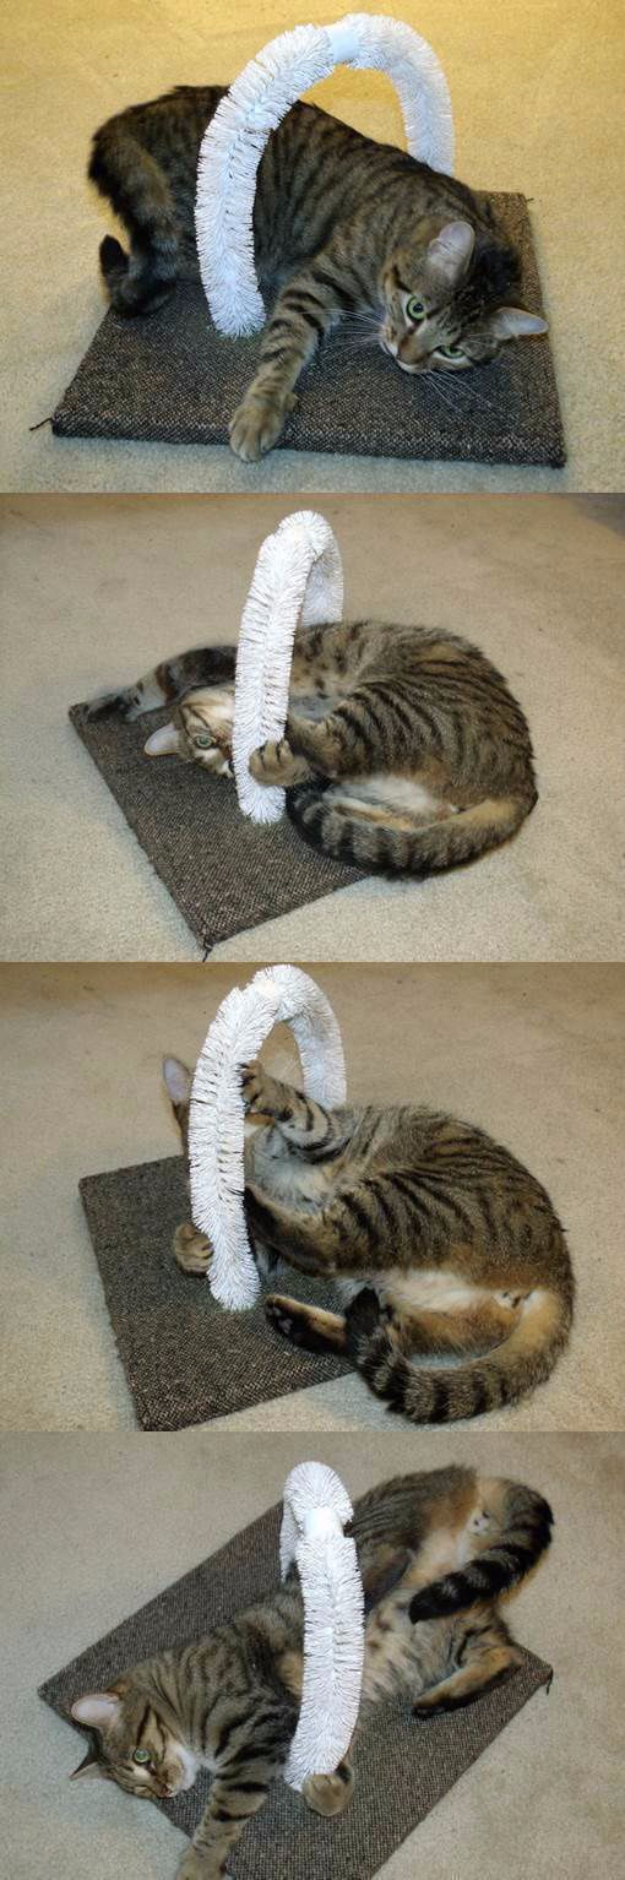 DIY Cat Hacks - DIY Self PEtting Station For Your Cats - Tips and Tricks Ideas for Cat Beds and Toys, Homemade Remedies for Fleas and Scratching - Do It Yourself Cat Treat Recips, Food and Gear for Your Pet - Cool Gifts for Cats #cathacks #cats #pets